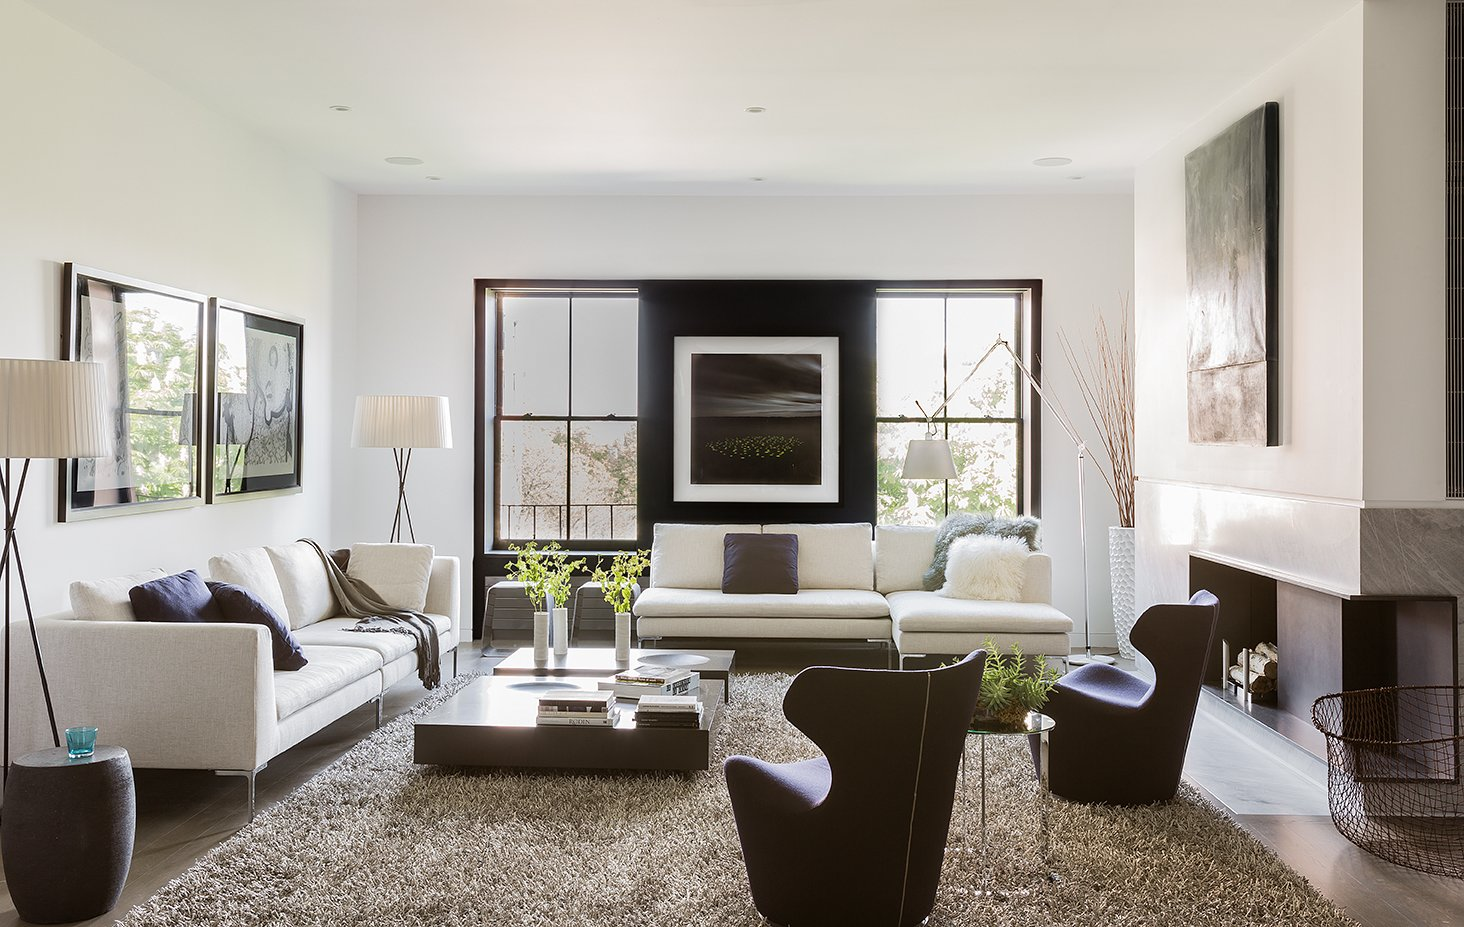 Since a sophisticated, modern look was imperative to the architectural design, the same was expected of the furnishings. A B&B Italia Charles sofa, chaise lounge, and Piccola Papilio chairs fill the living room. Trípode Floor Lamps by Santa & Cole frame the sofa.